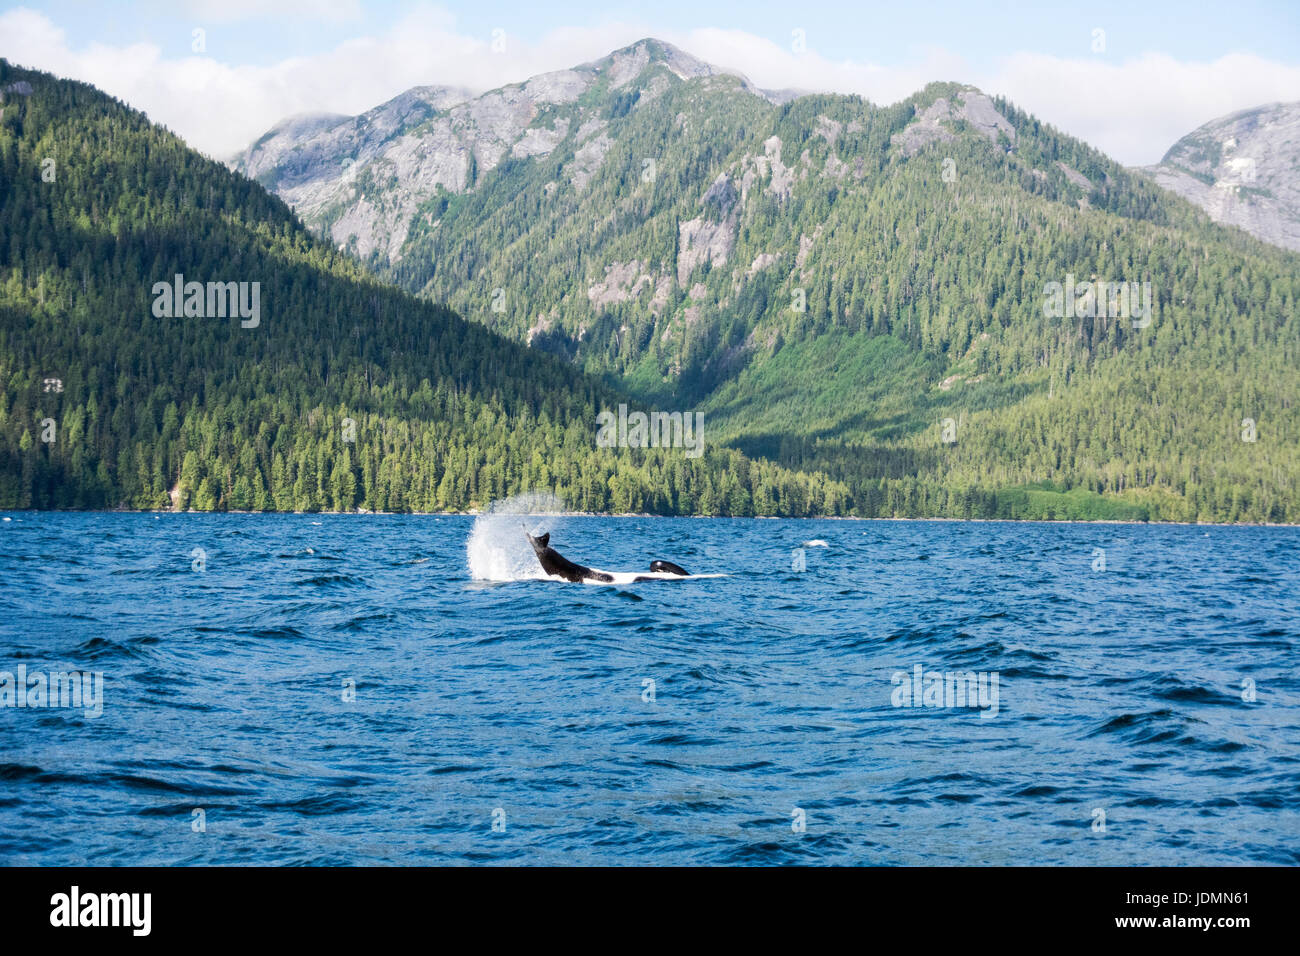 A lone resident killer whale flapping its tail on the water in Whale Channel, in the Great Bear Rainforest region - Stock Image